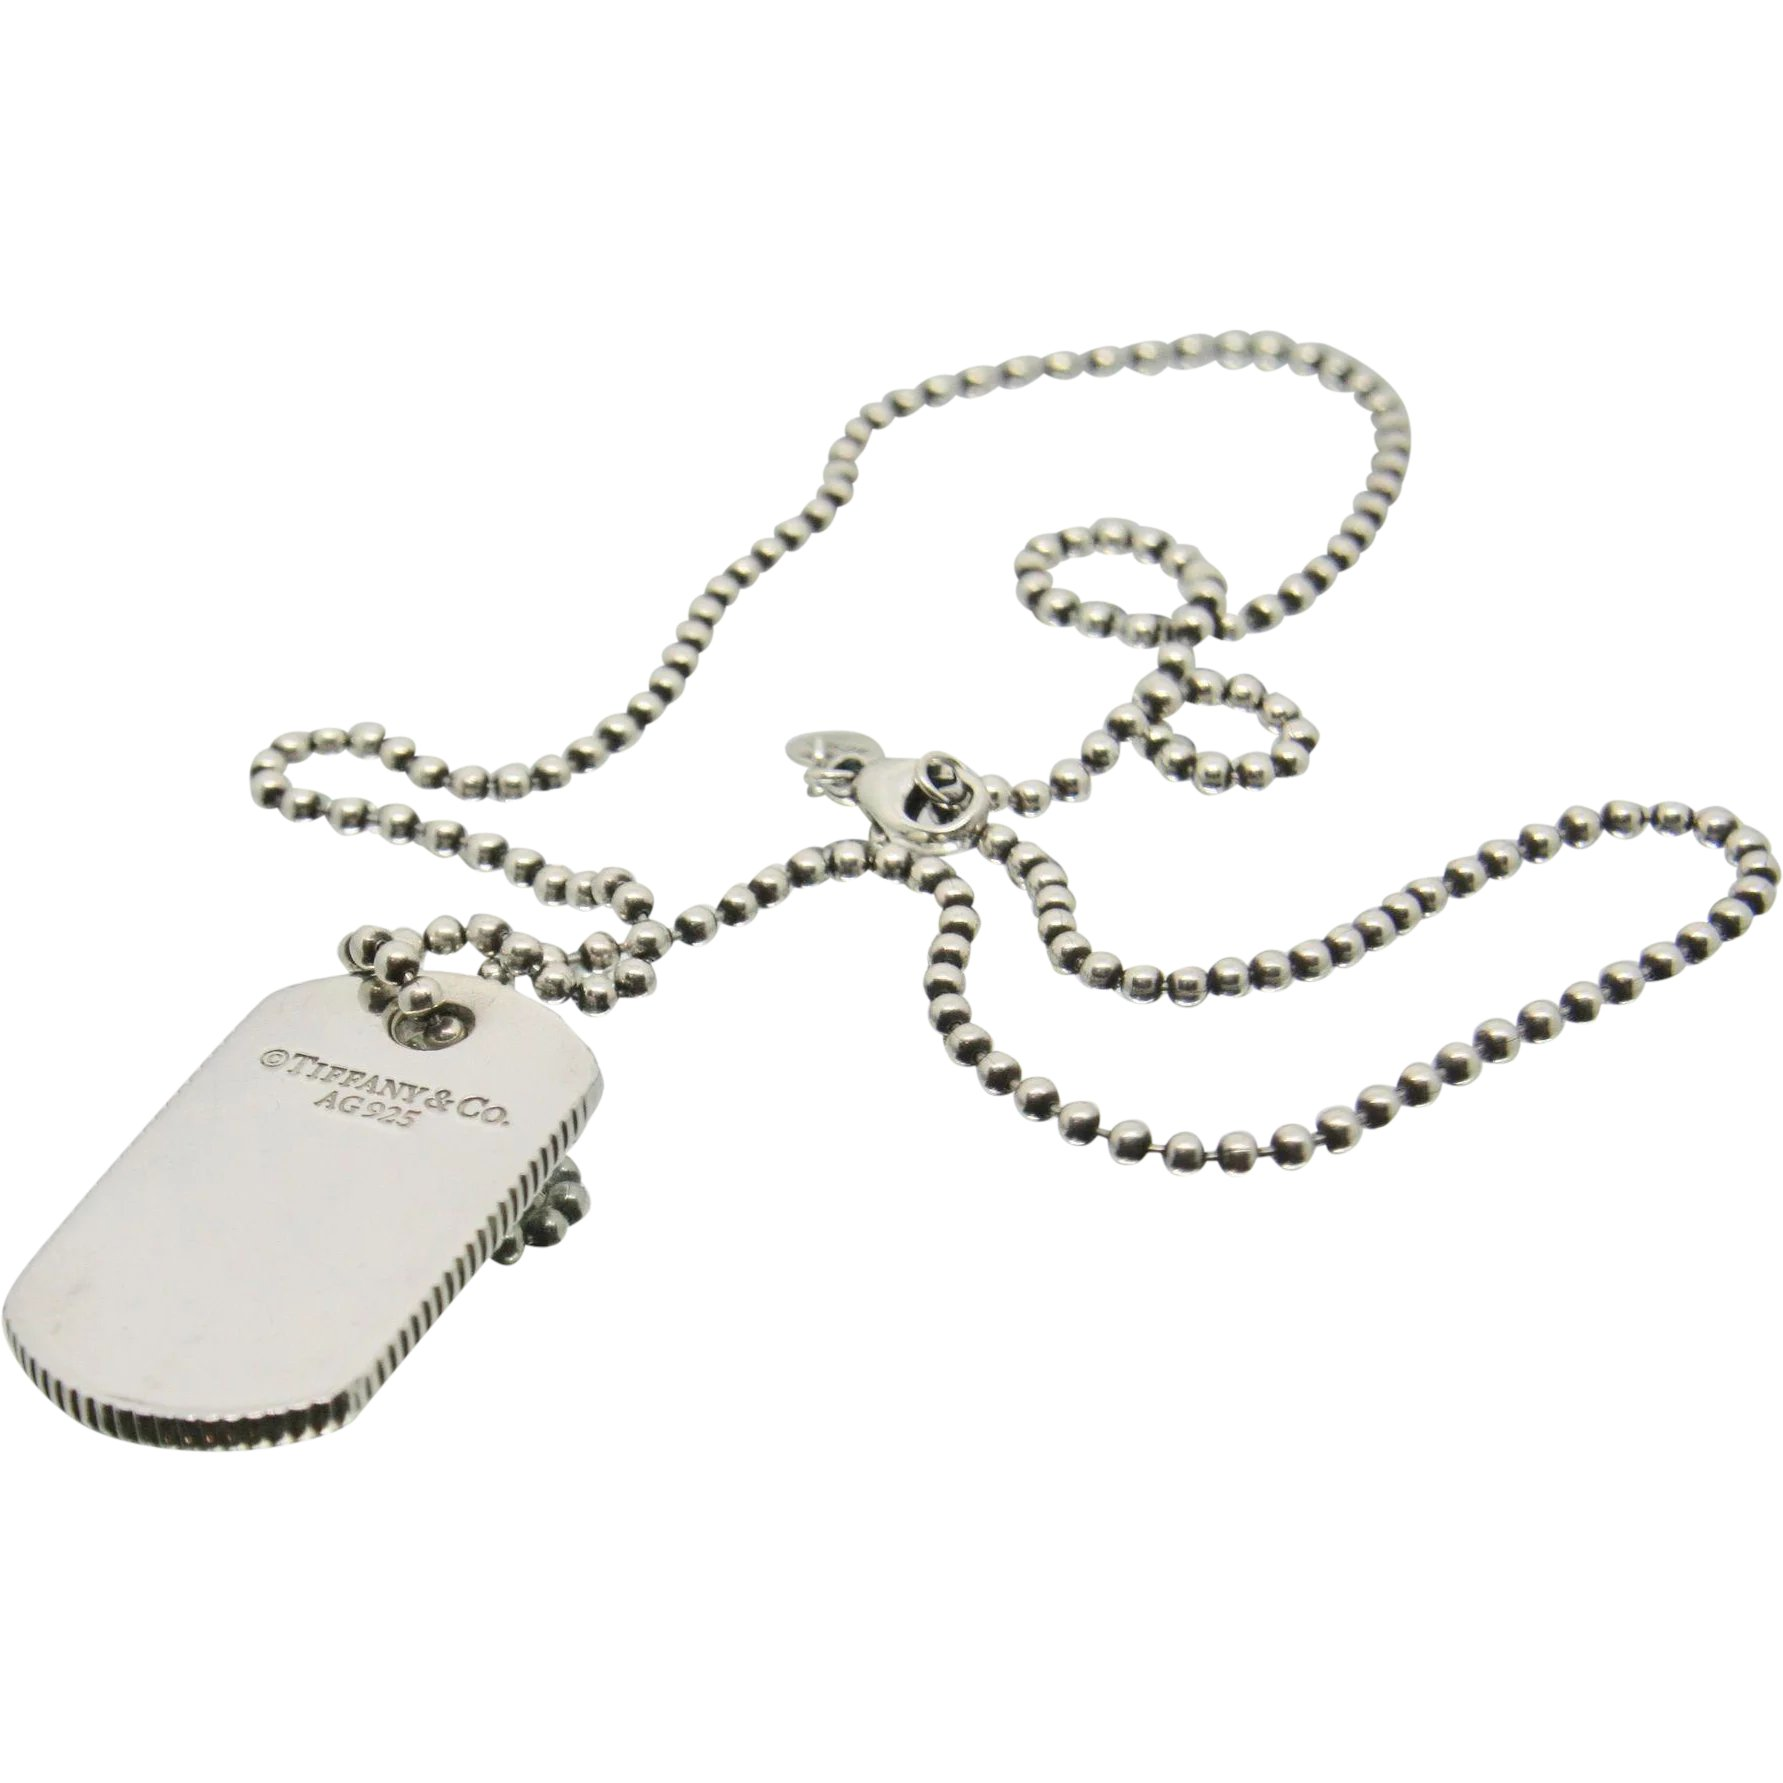 106d8d908 Tiffany & Co. Sterling Silver Dog Tag Necklace : Ecexchange | Ruby Lane